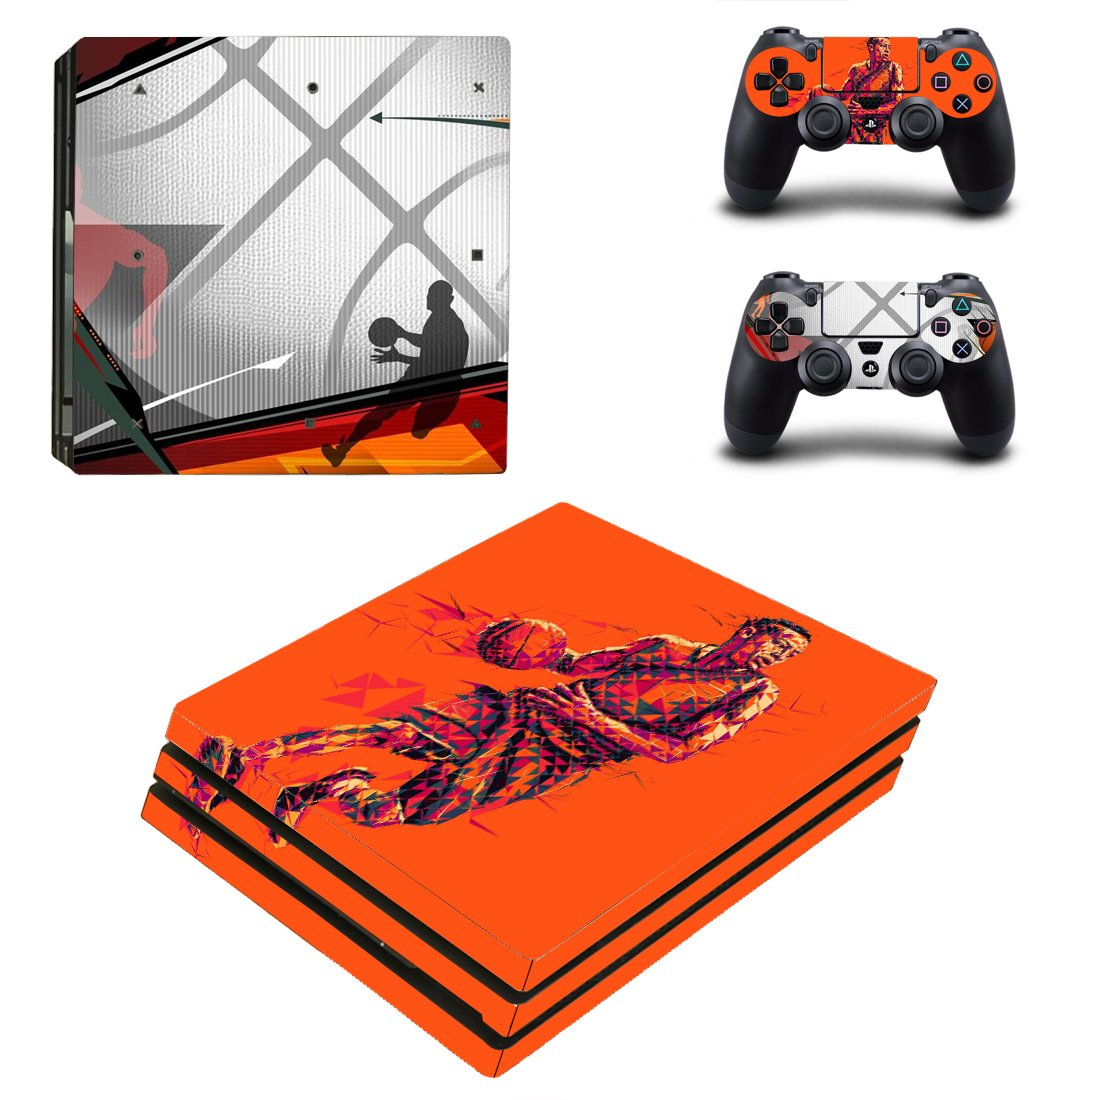 9f63d58e110 ... Basketball Baseball PS4 Pro Designer Skin Game Console System p 2  Controller Decal Vinyl Protective Covers Stickers for Playstation 4 Pro  (Future)